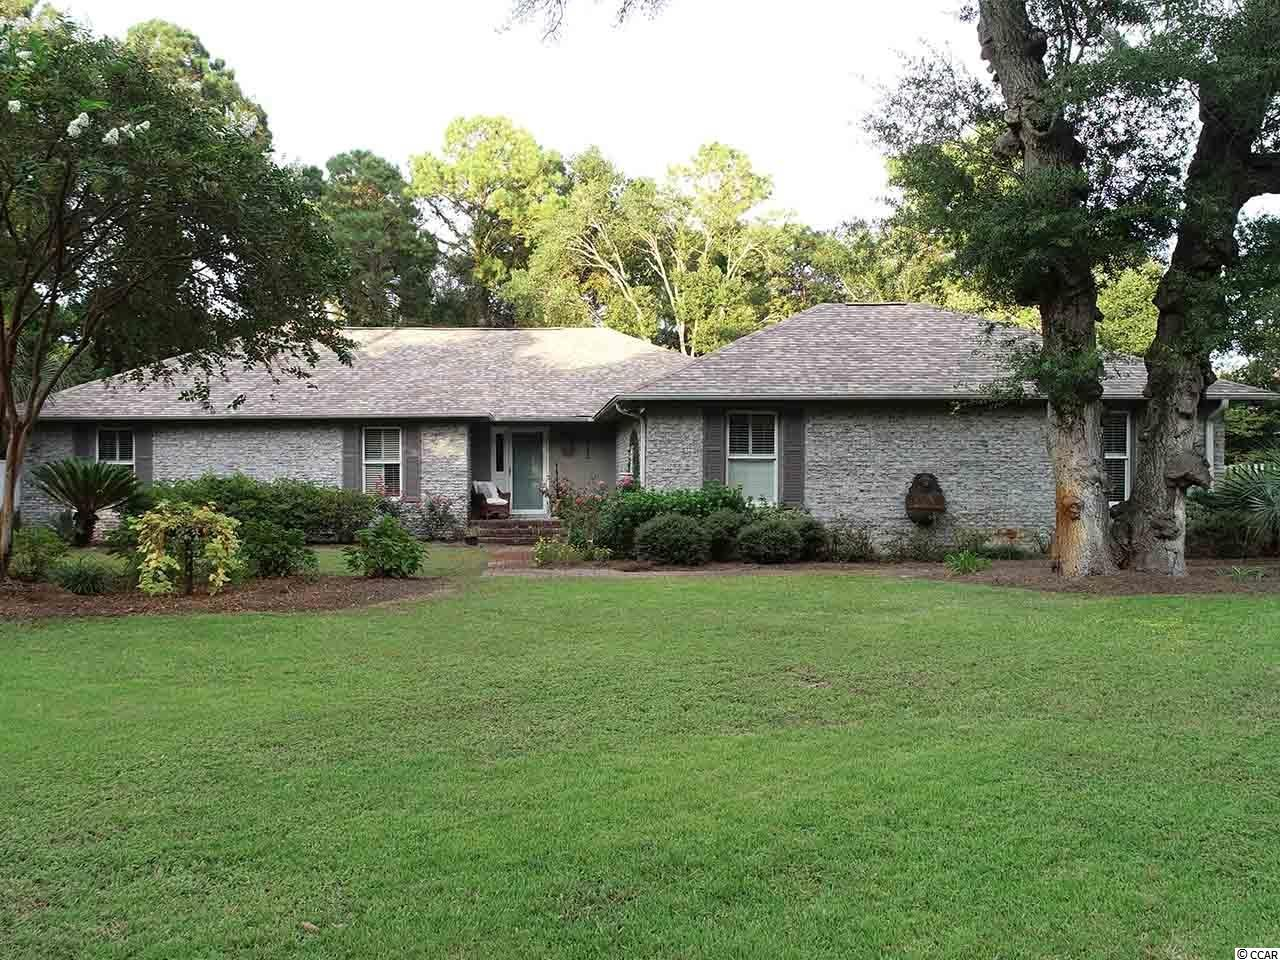 Walking distance to the Beach! The home is located in the well established Arcadian Shores neighborhood. The home has 3 full bedrooms with 1 non confirming bedroom. 2 1/2 Bathrooms that have been remodeled. All Brick home, ranch style (all on one floor). Hardwood flooring throughout the home. The Livingroom has a true wood burning fireplace, Dining Room and Sunroom overlooks a koi fish pond and live oak trees in the back yard which is entirely fenced in and includes a spacious storage facility for your yard equipment and or golf cart. Plenty of room in the Carolina room for family and friends to gather. Upgraded appliances, breakfast room off the kitchen. Plenty of storage in the 3,098 sq. ft. home. Plenty of room to build a pool on this .46 acres too. There is a private 7 acre lake at the end of the street to enjoy. Tucked away from the tourist or traffic but close enough for shopping and restaurants. Property taxes in Horry County differ between primary home and secondary home.